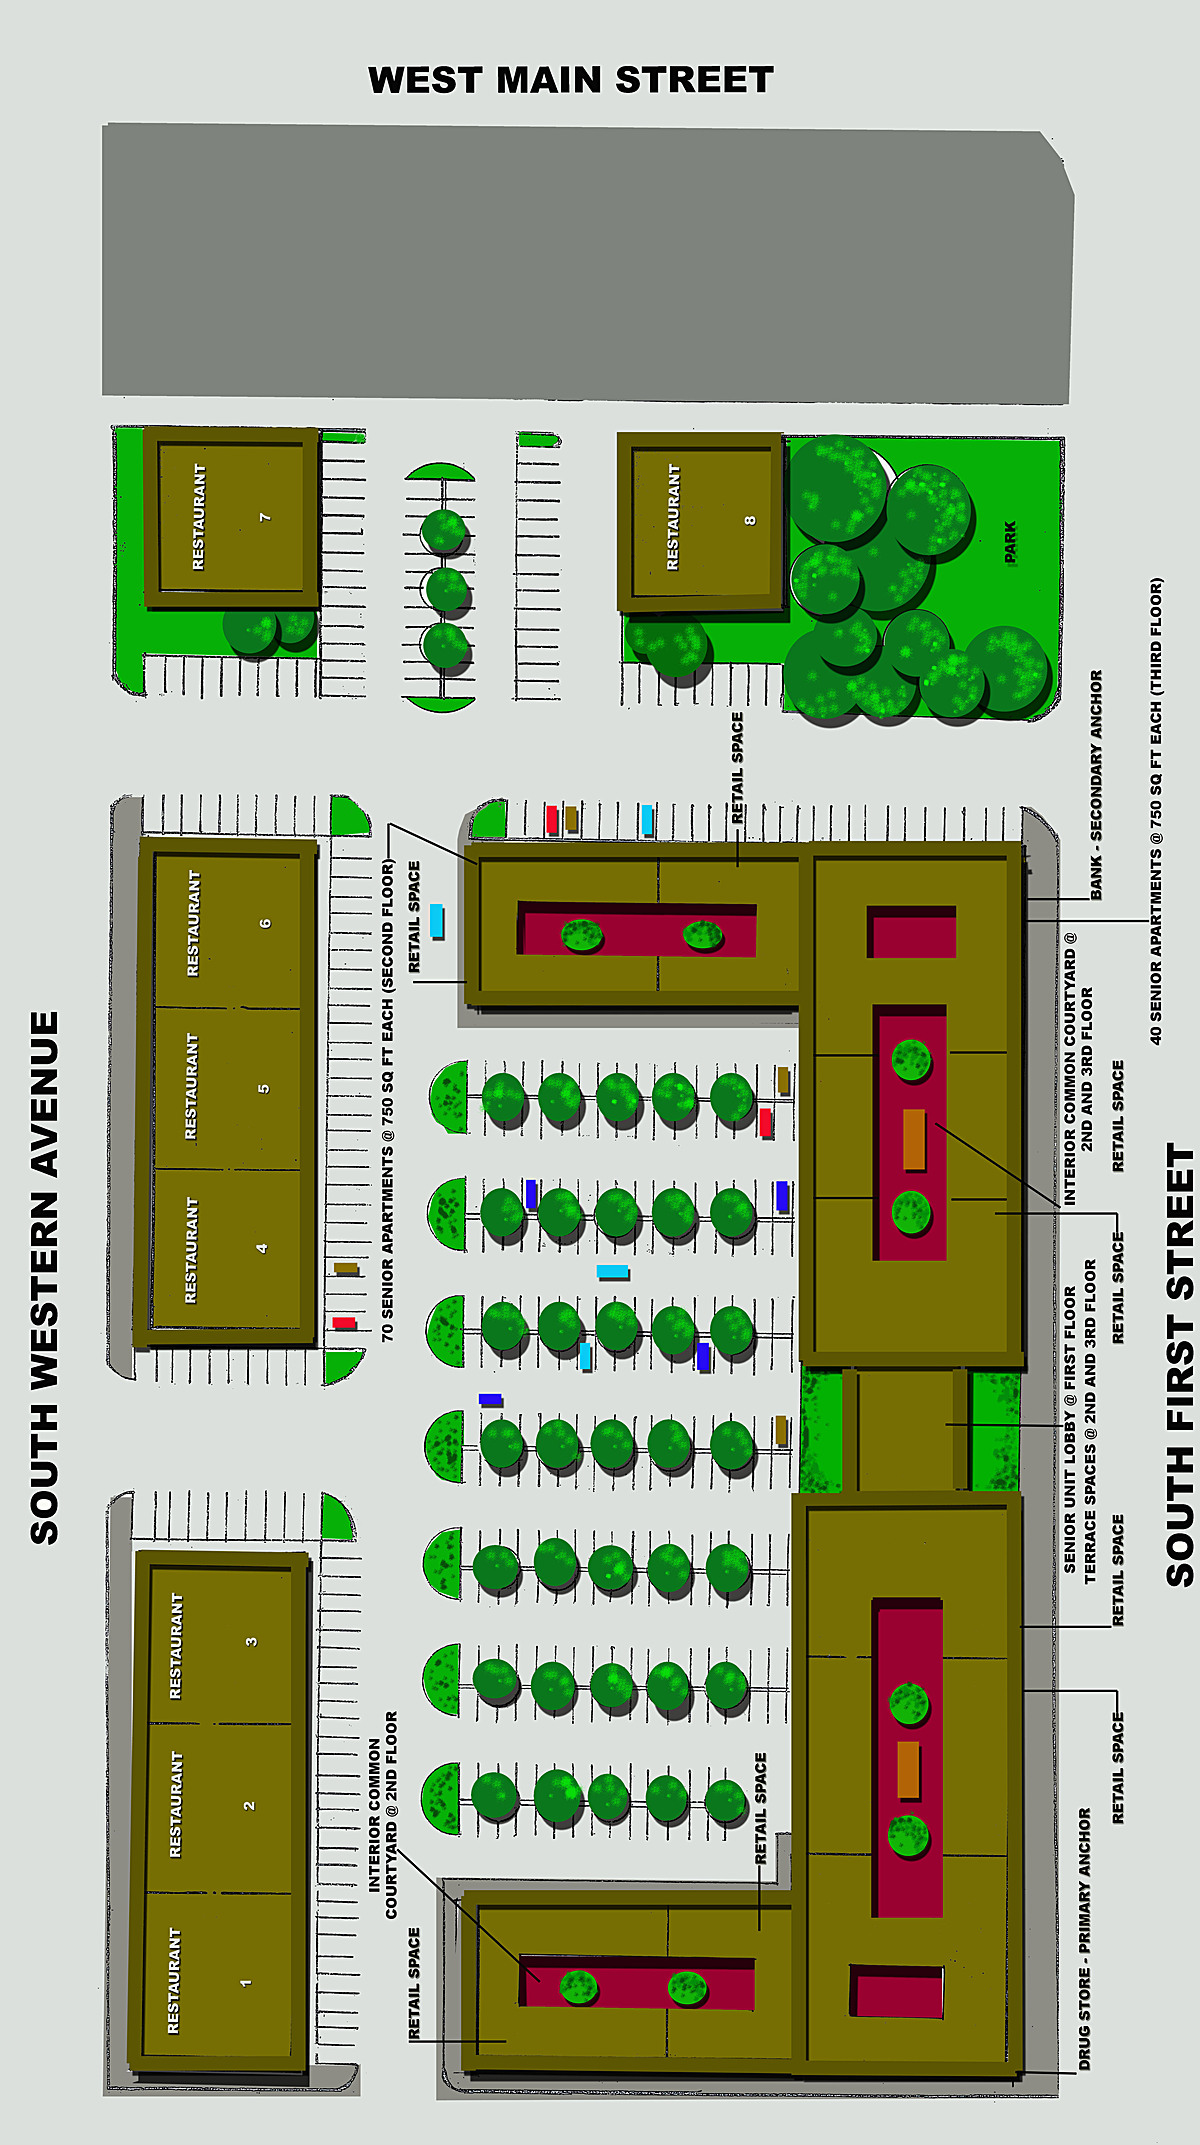 Conceptual Site Plan for Redevelopment of Site